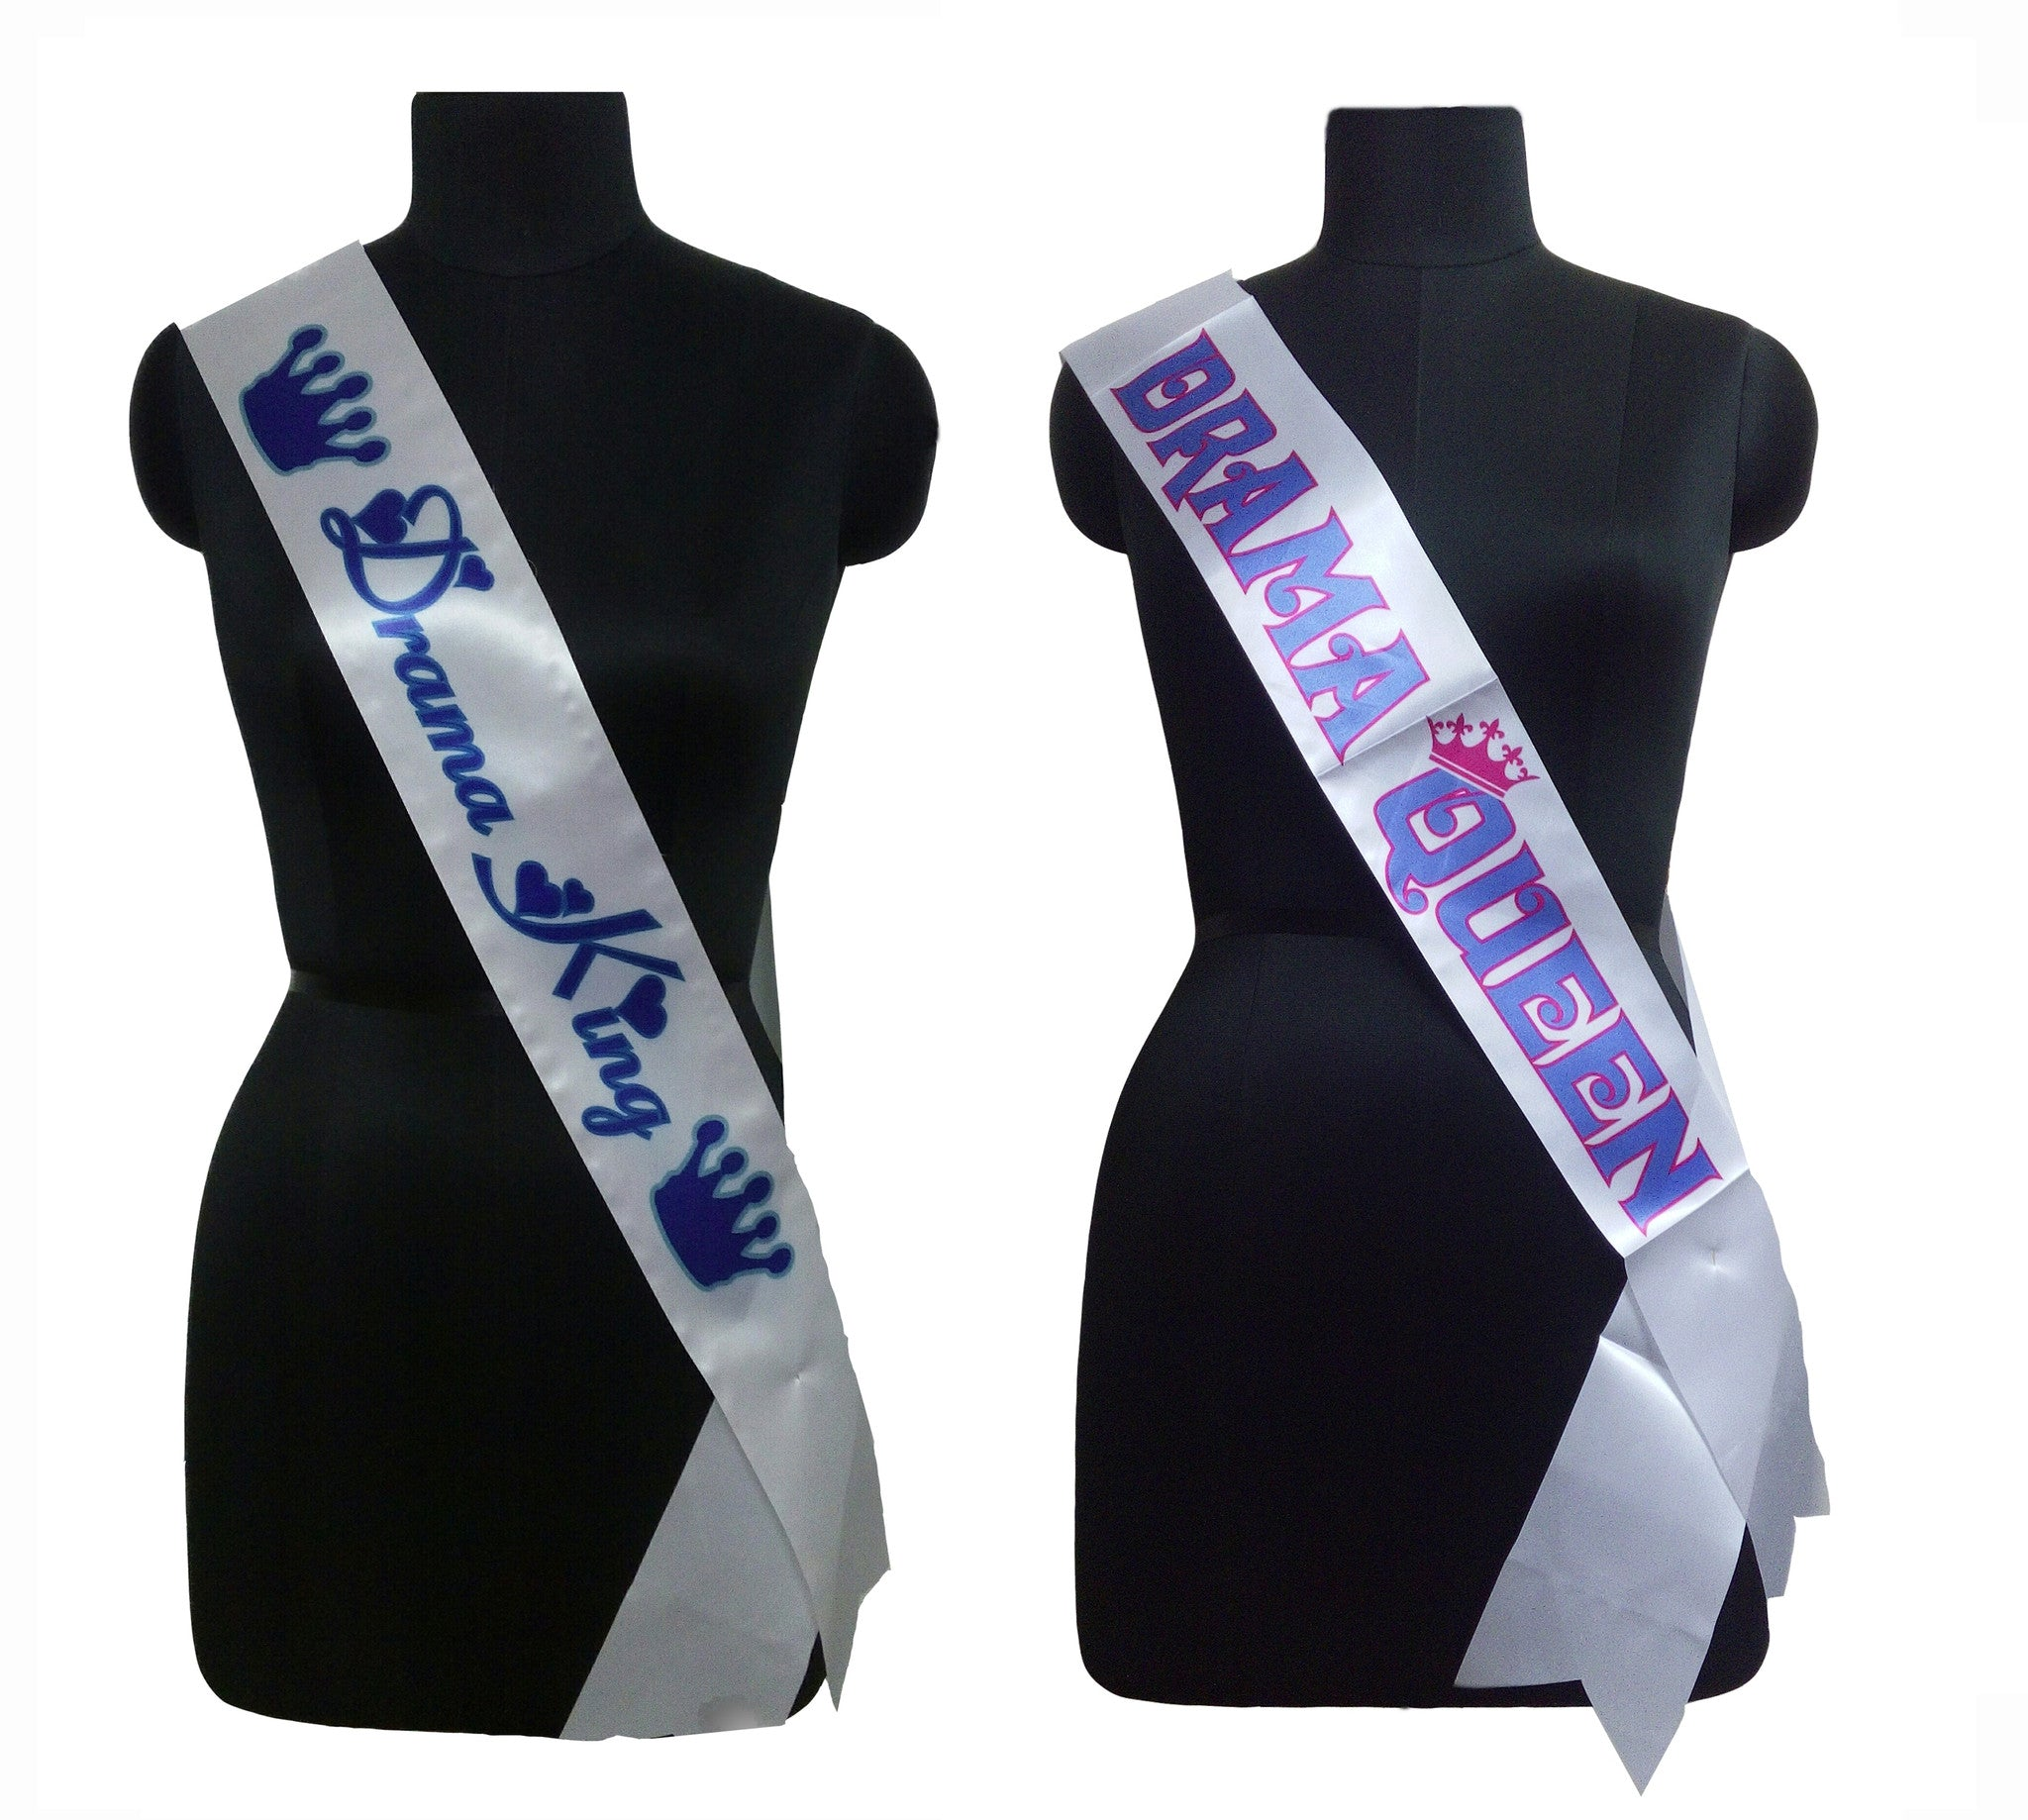 Drama King & Queen Sashes Combo